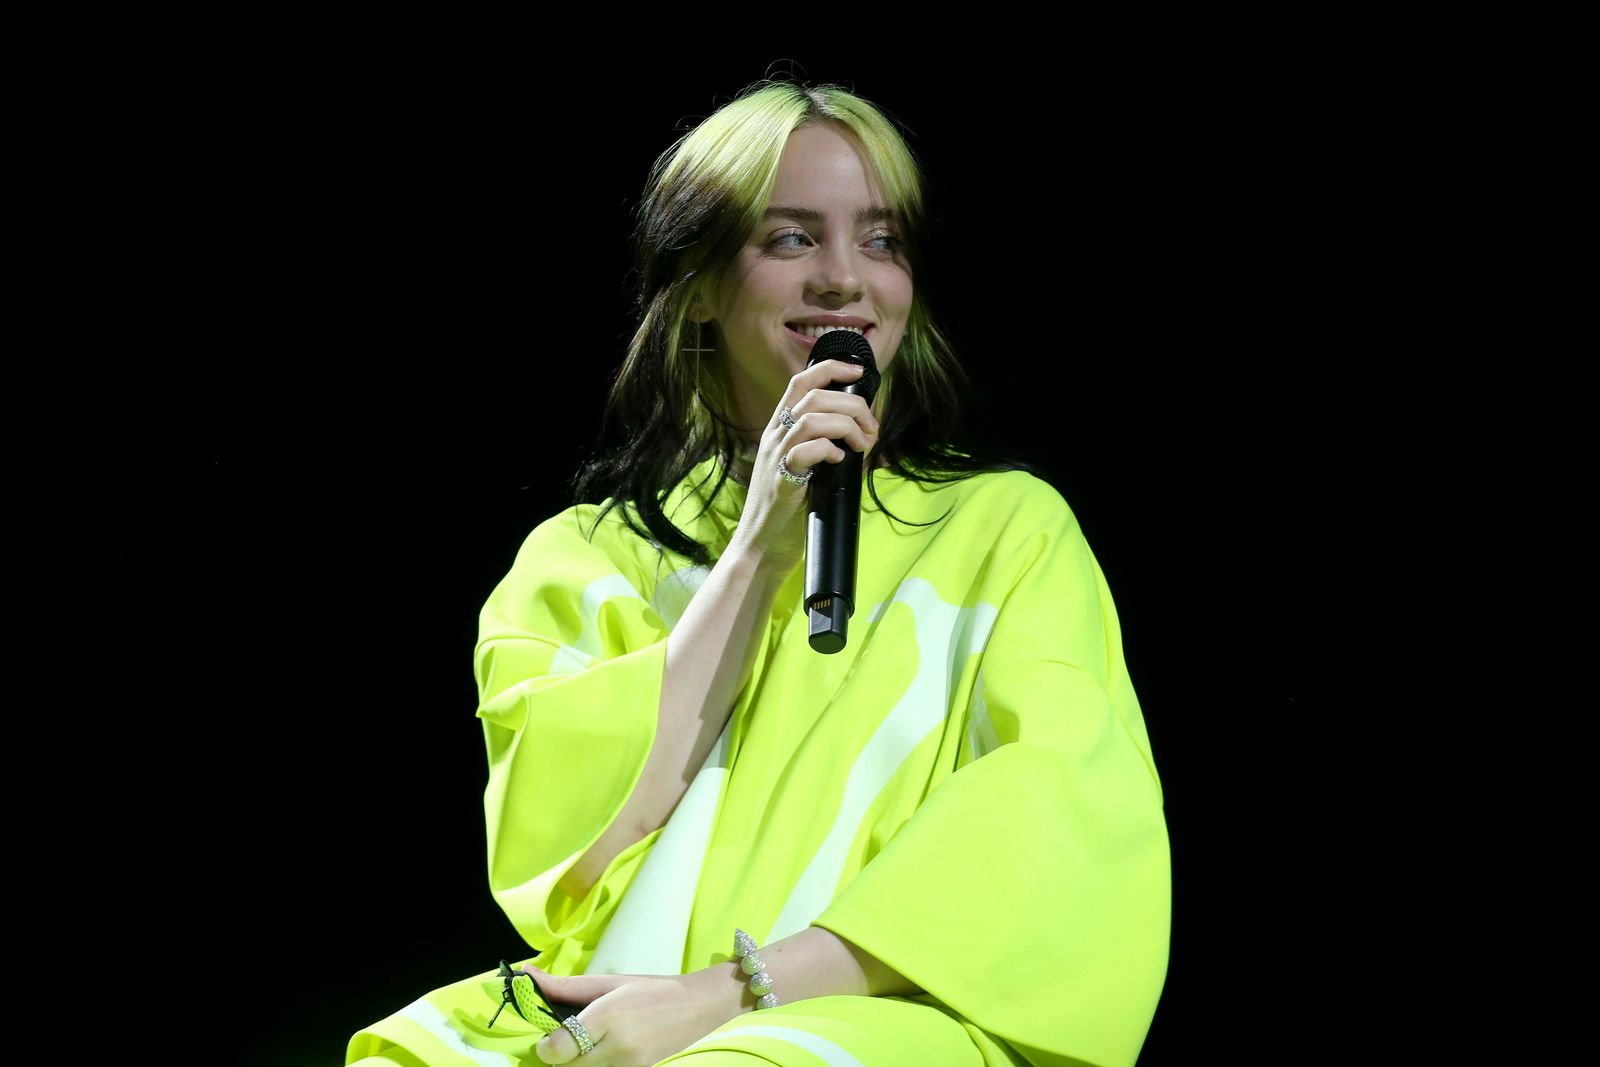 Billie Eilish performs live on stage at the 2020 Spotify Best New Artist Party at The Lot Studios on Thursday, Jan. 23, 2020, in West Hollywood, Calif. (Photo by Willy Sanjuan/Invision/AP)